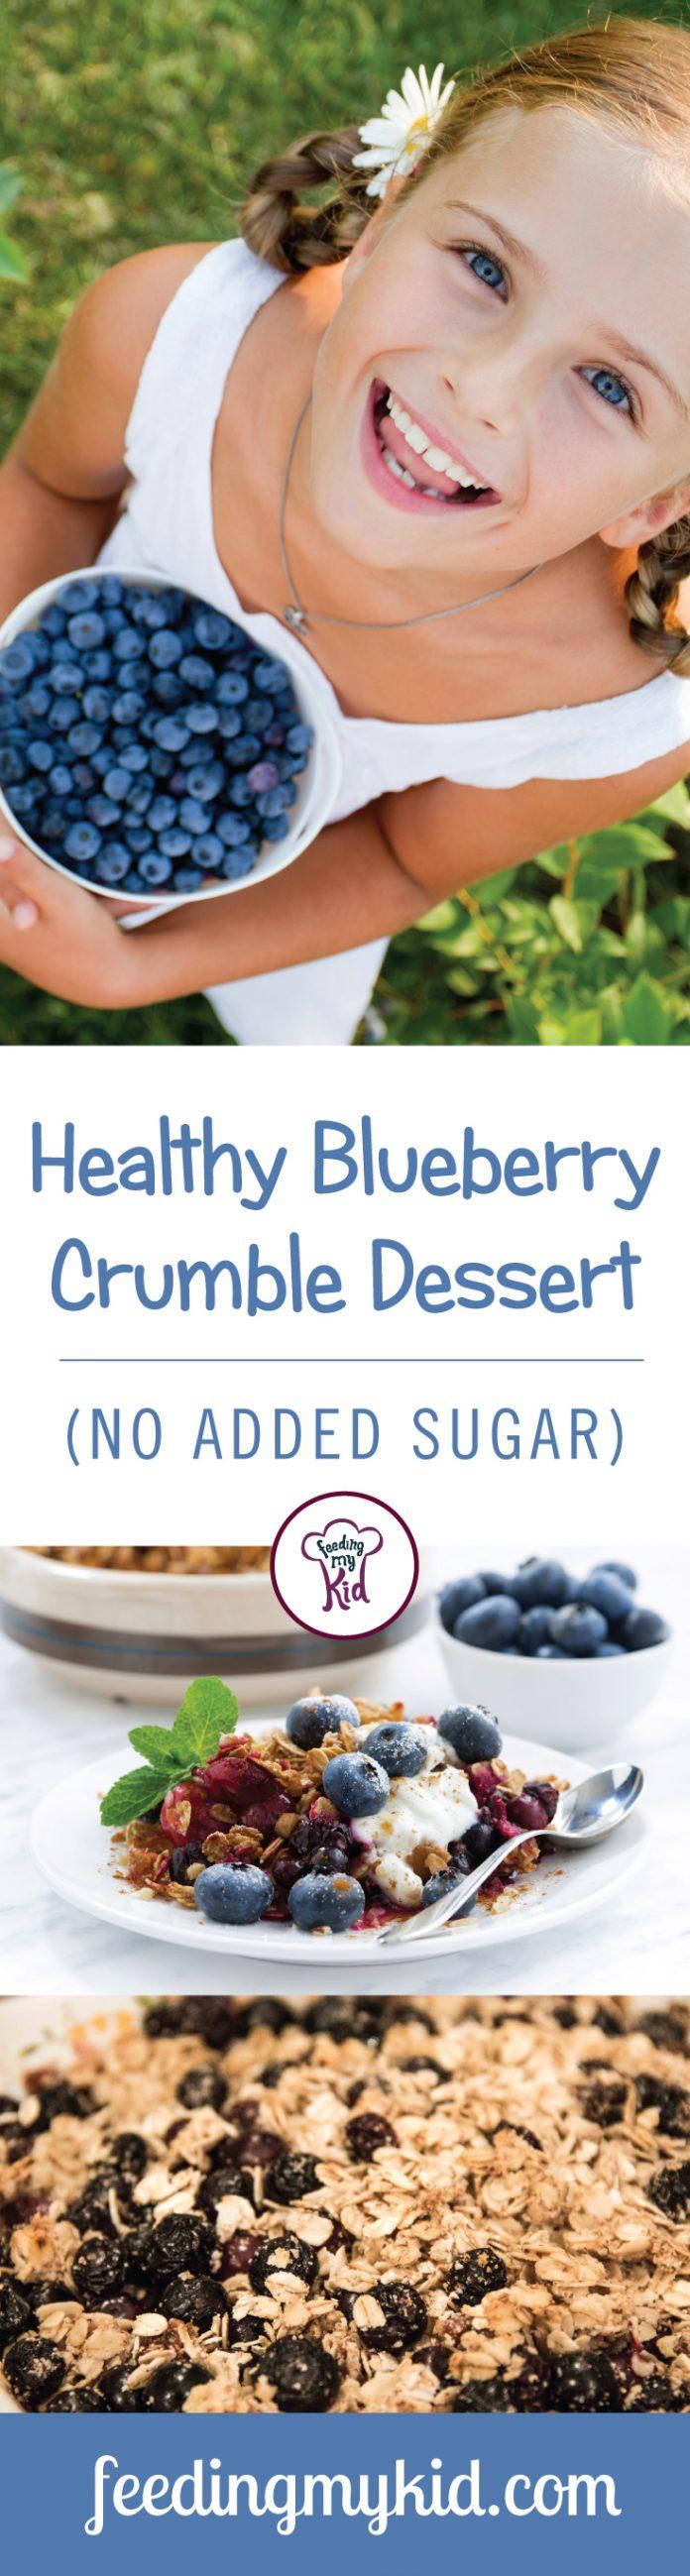 Blueberry Crumble Recipe - Easy Blueberry Desserts